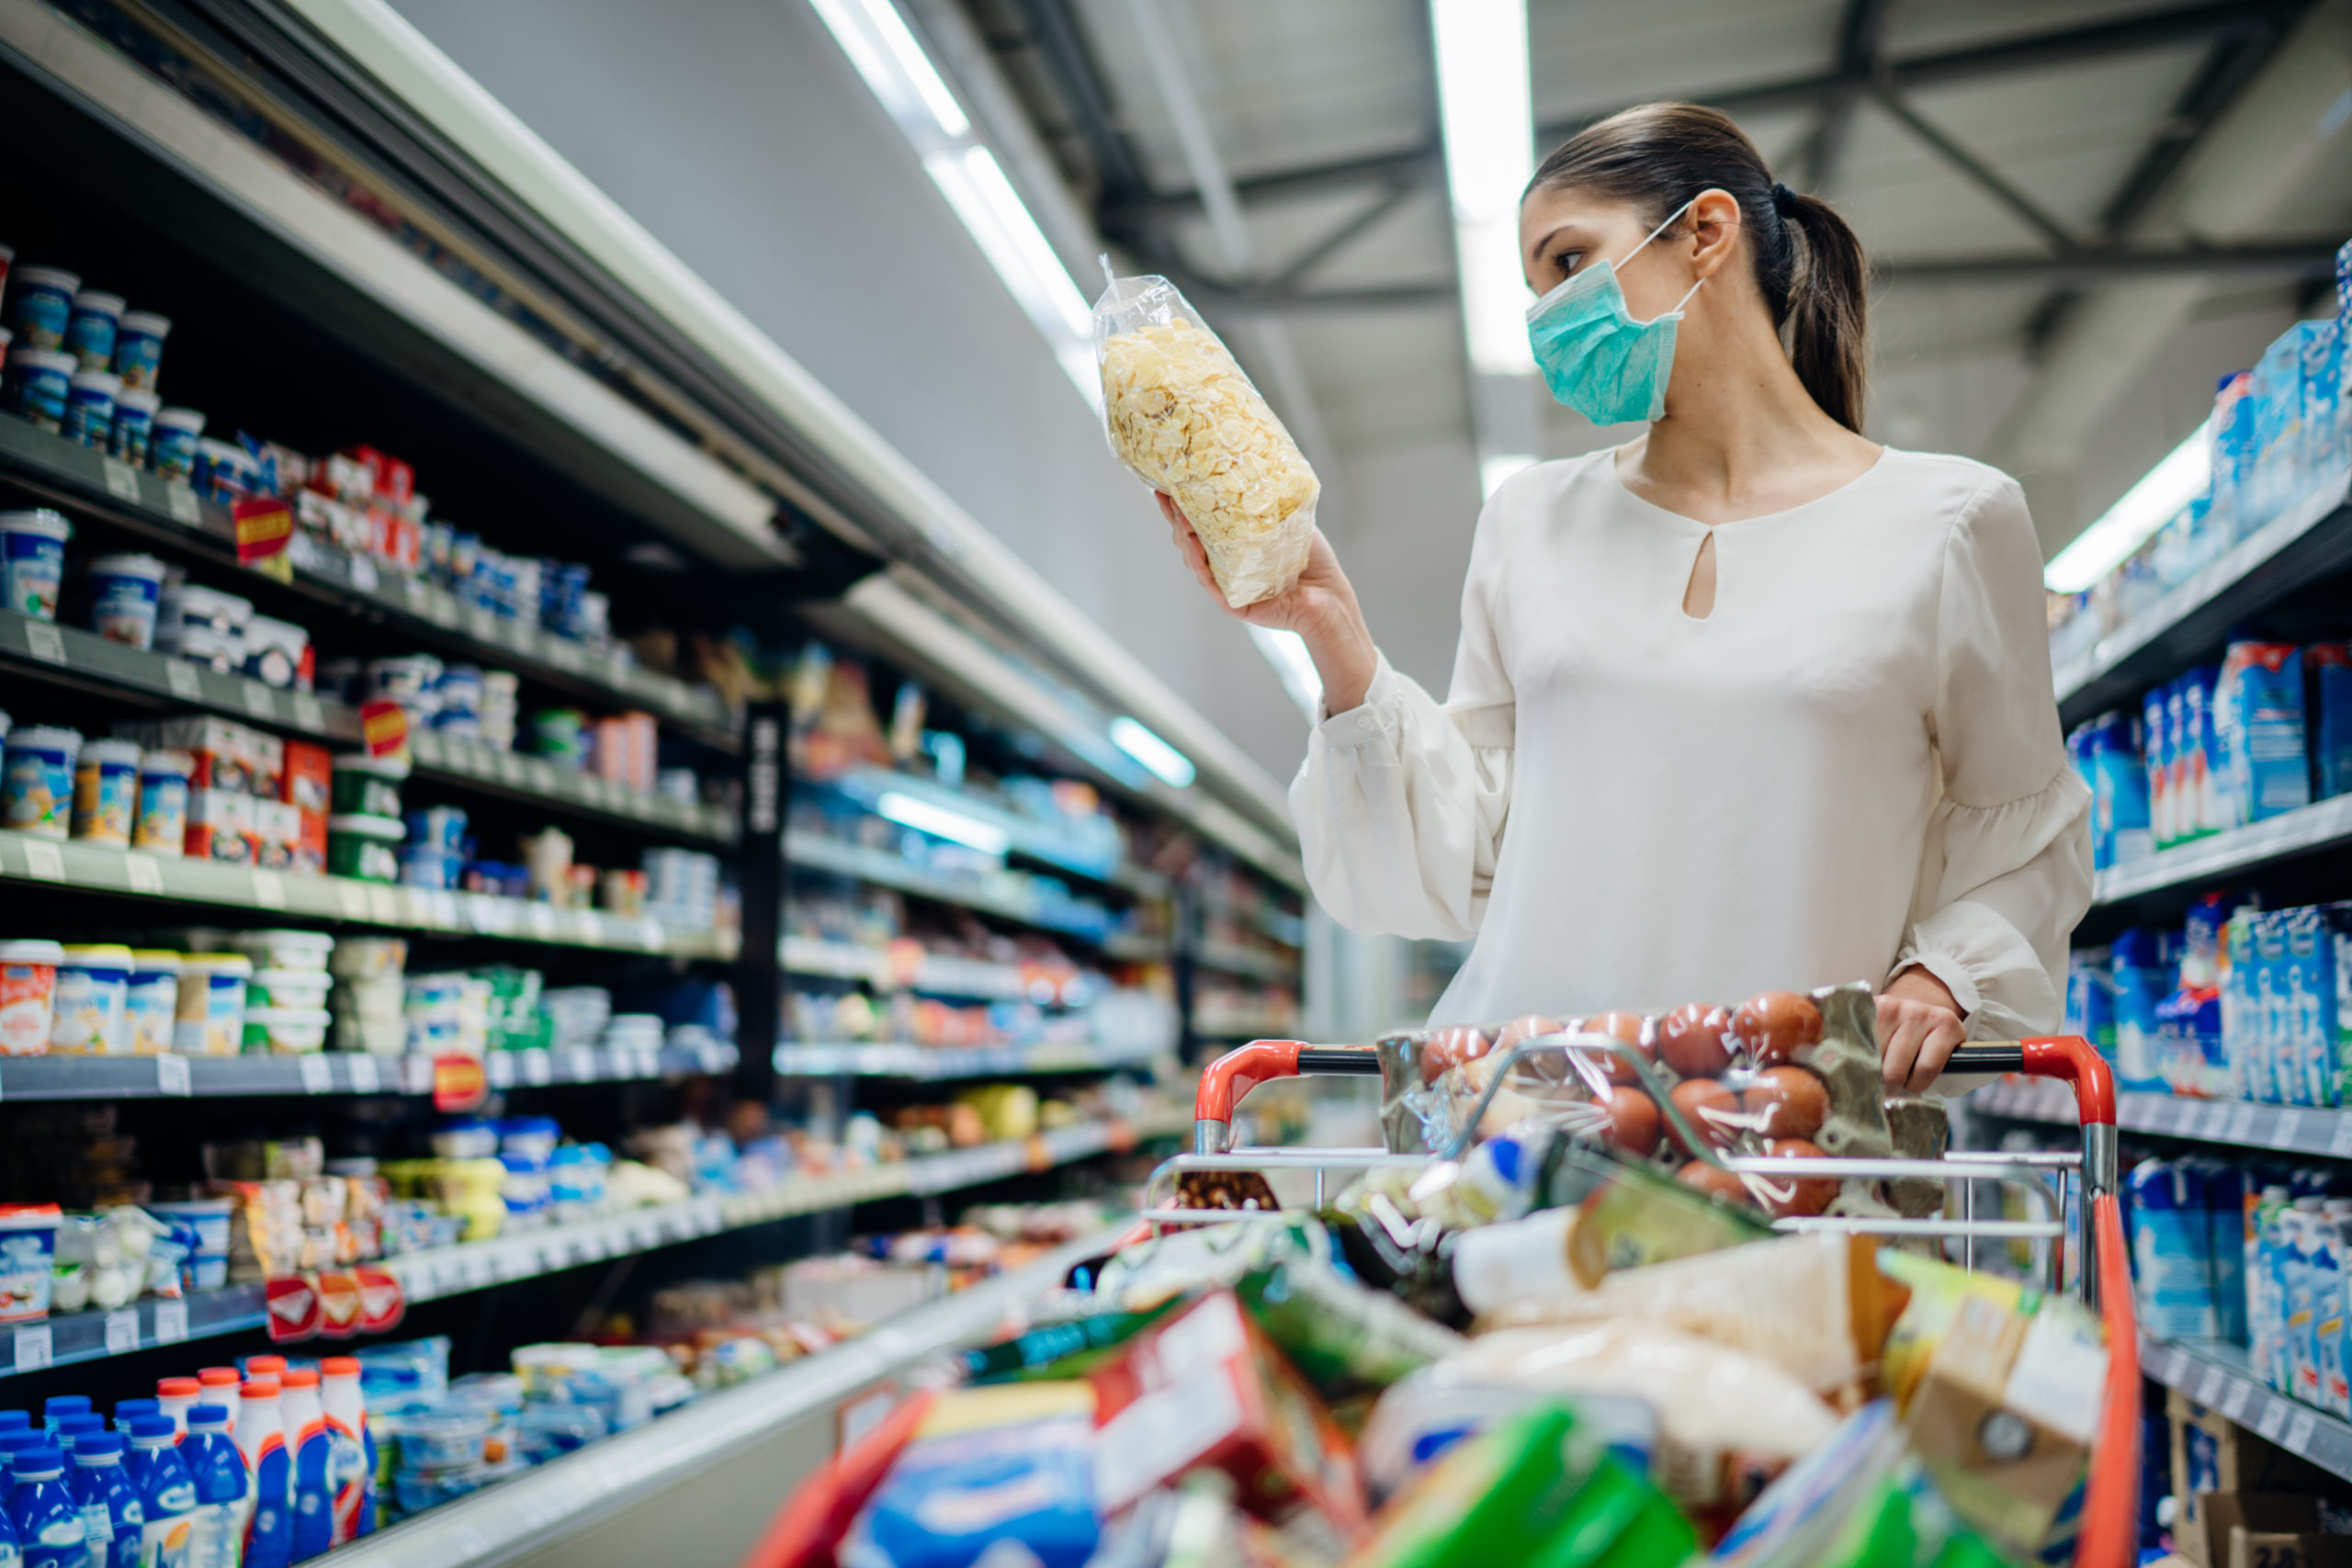 packaging, Young person with protective face mask buying groceries/supplies in the supermarket.Preparation for a pandemic quarantine due to coronavirus covid-19 outbreak.Choosing nonperishable food essentials